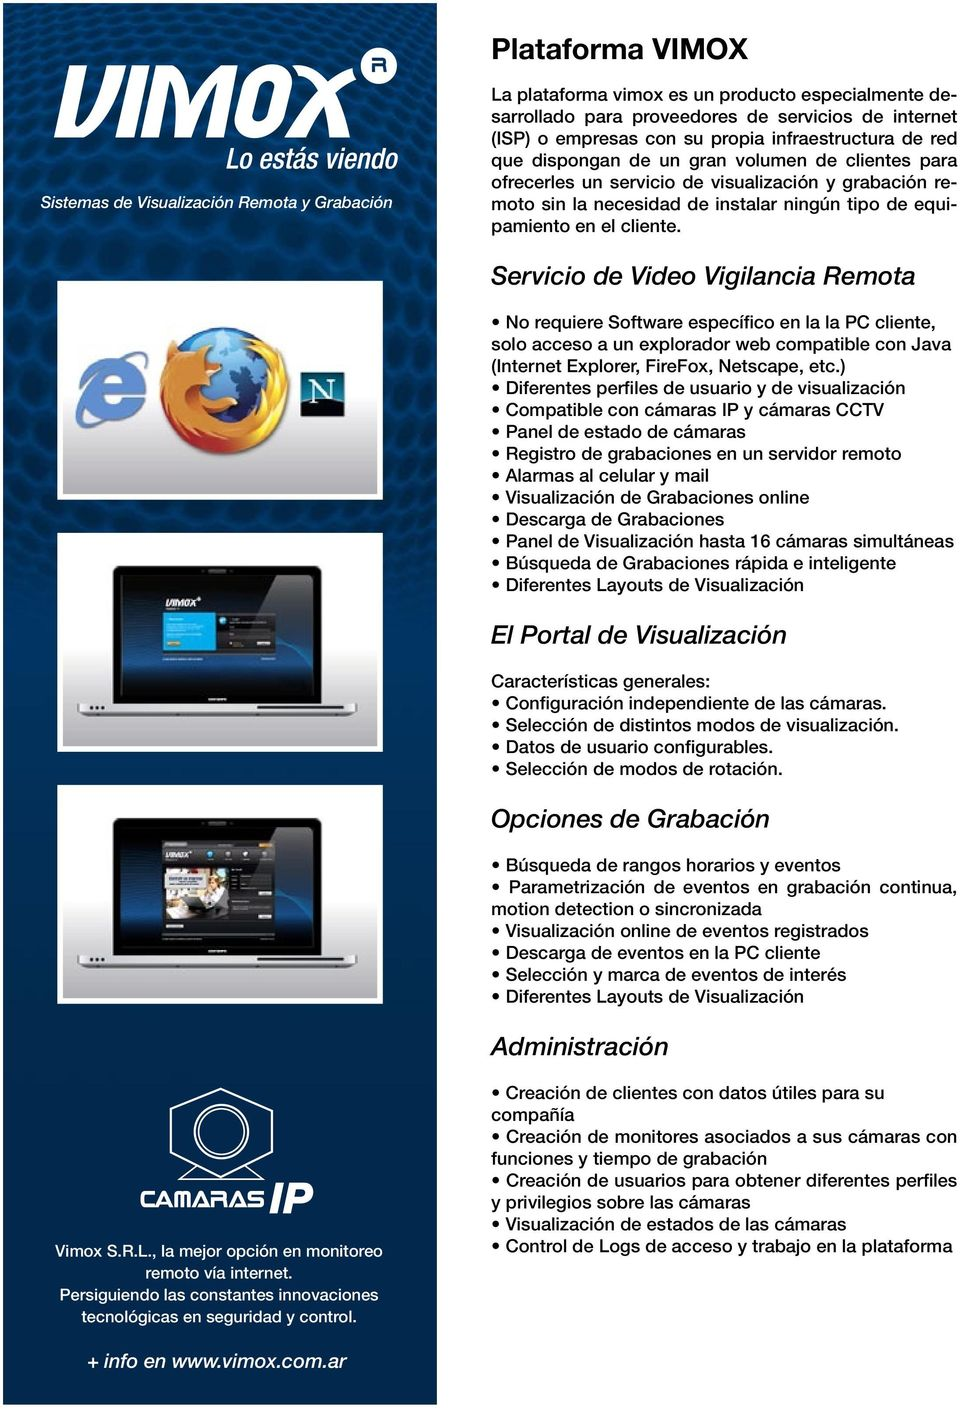 Servicio de Video Vigilancia Remota No requiere Software específico en la la PC cliente, solo acceso a un explorador web compatible con Java (Internet Explorer, FireFox, Netscape, etc.